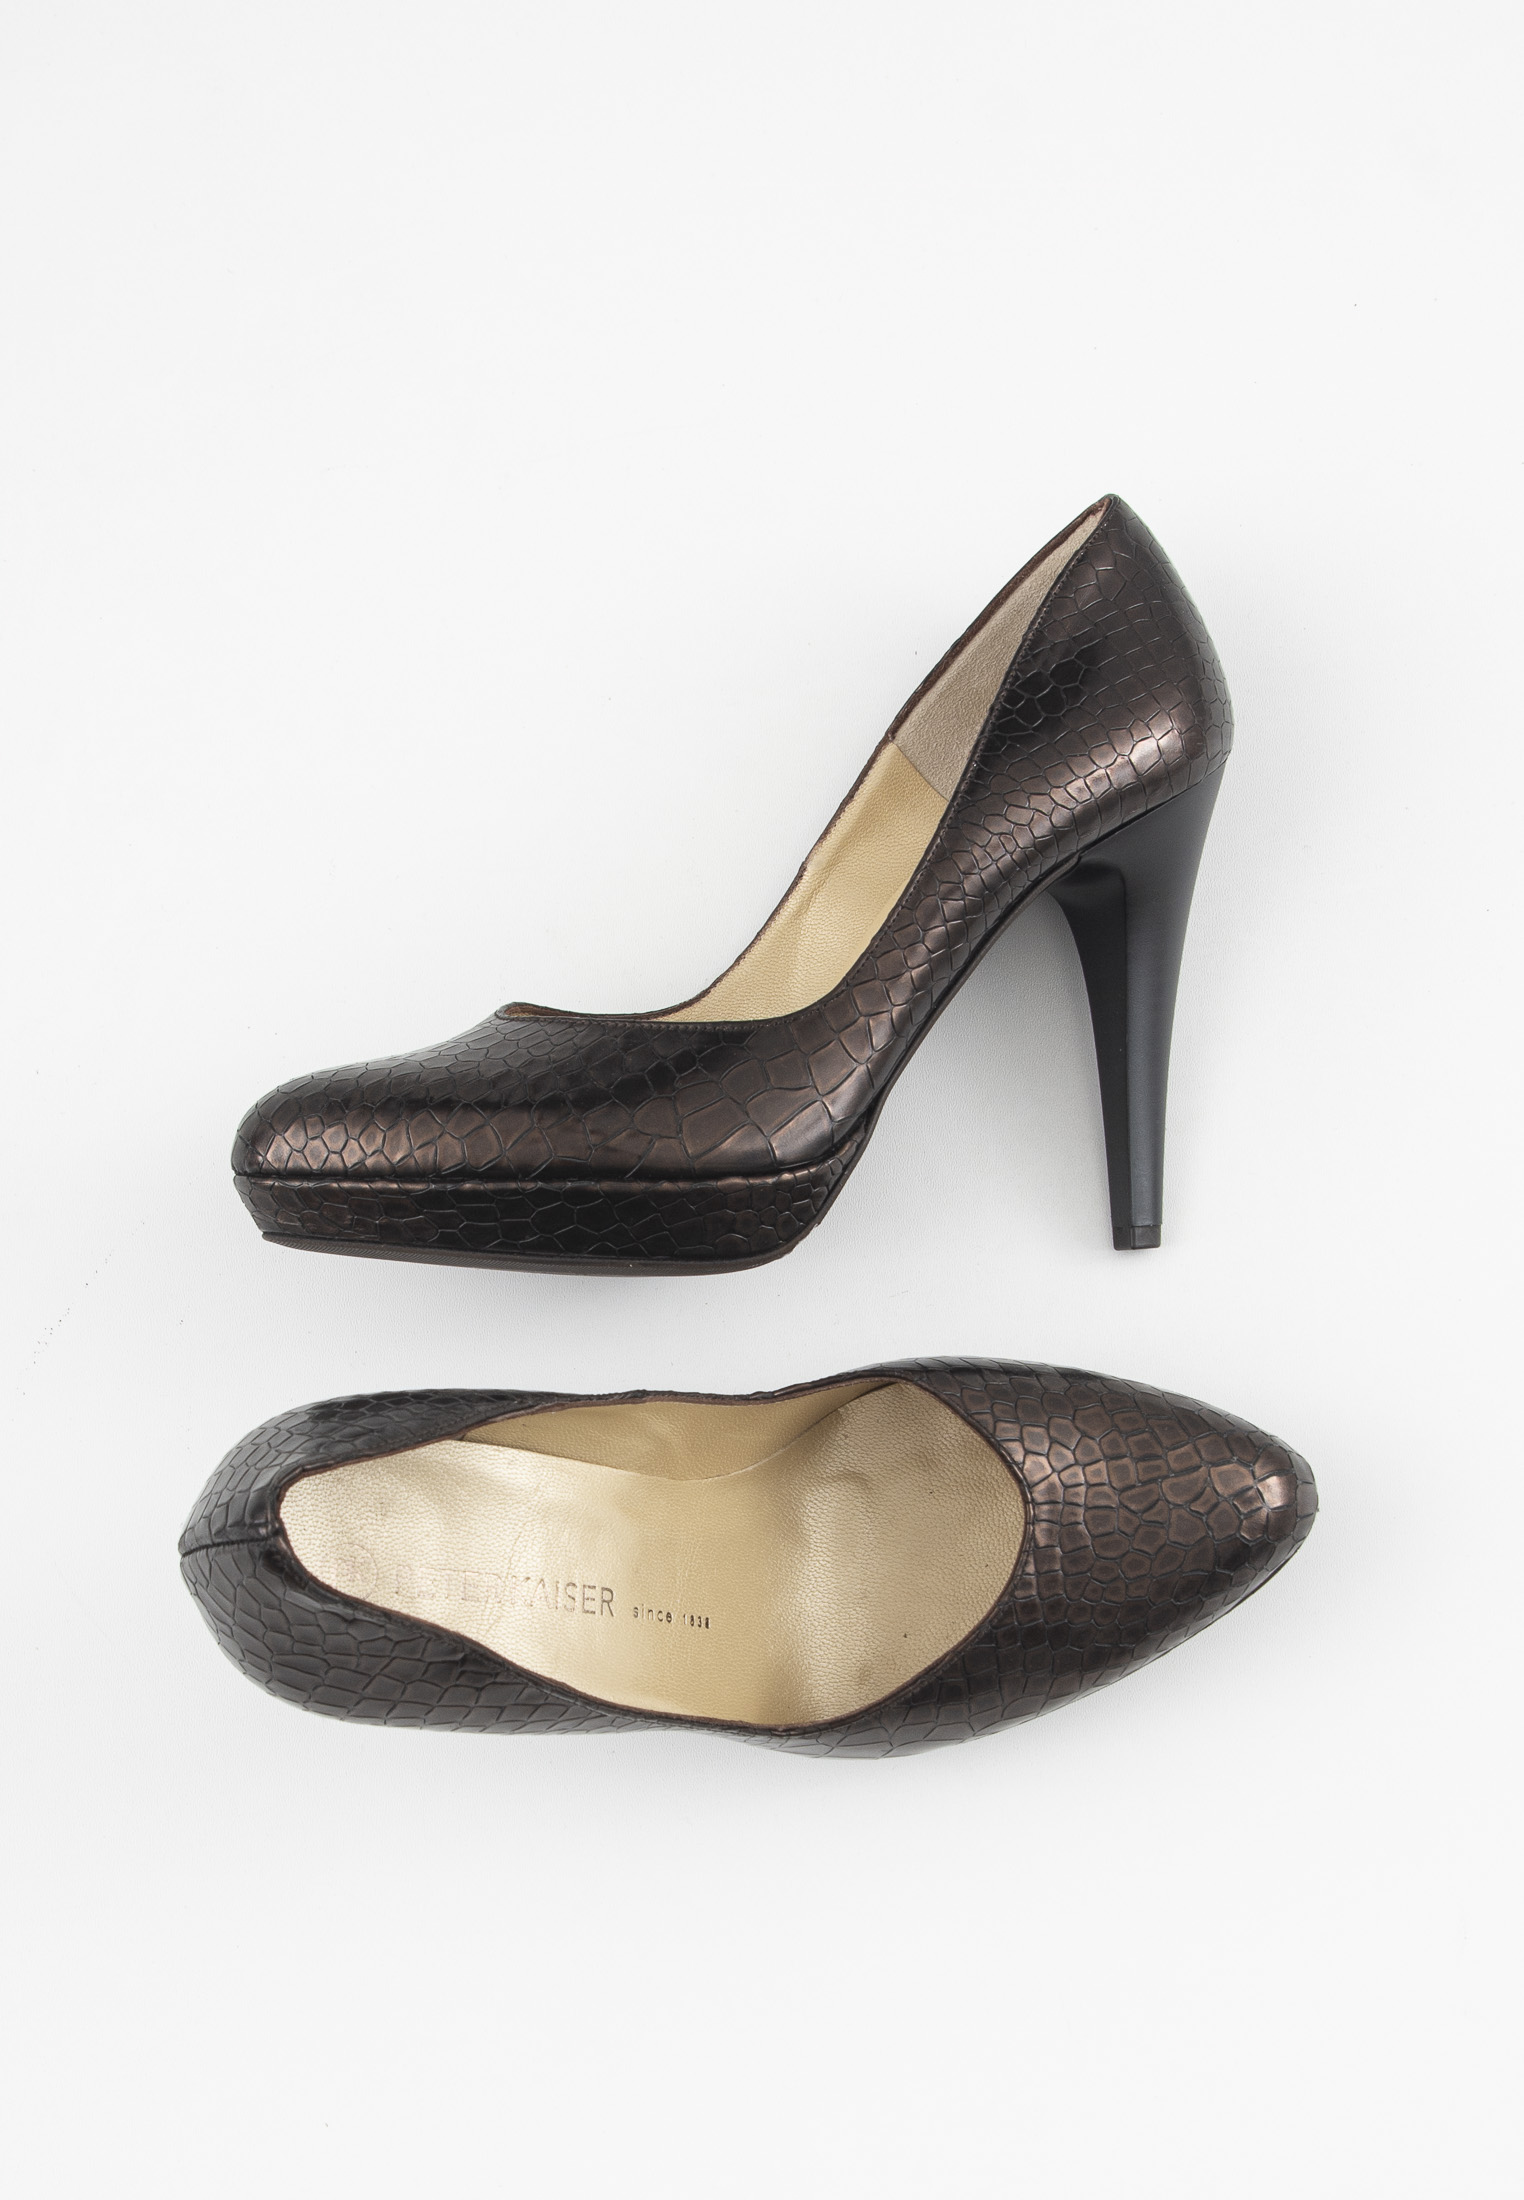 Peter Kaiser pumps, brun, 39 1/3